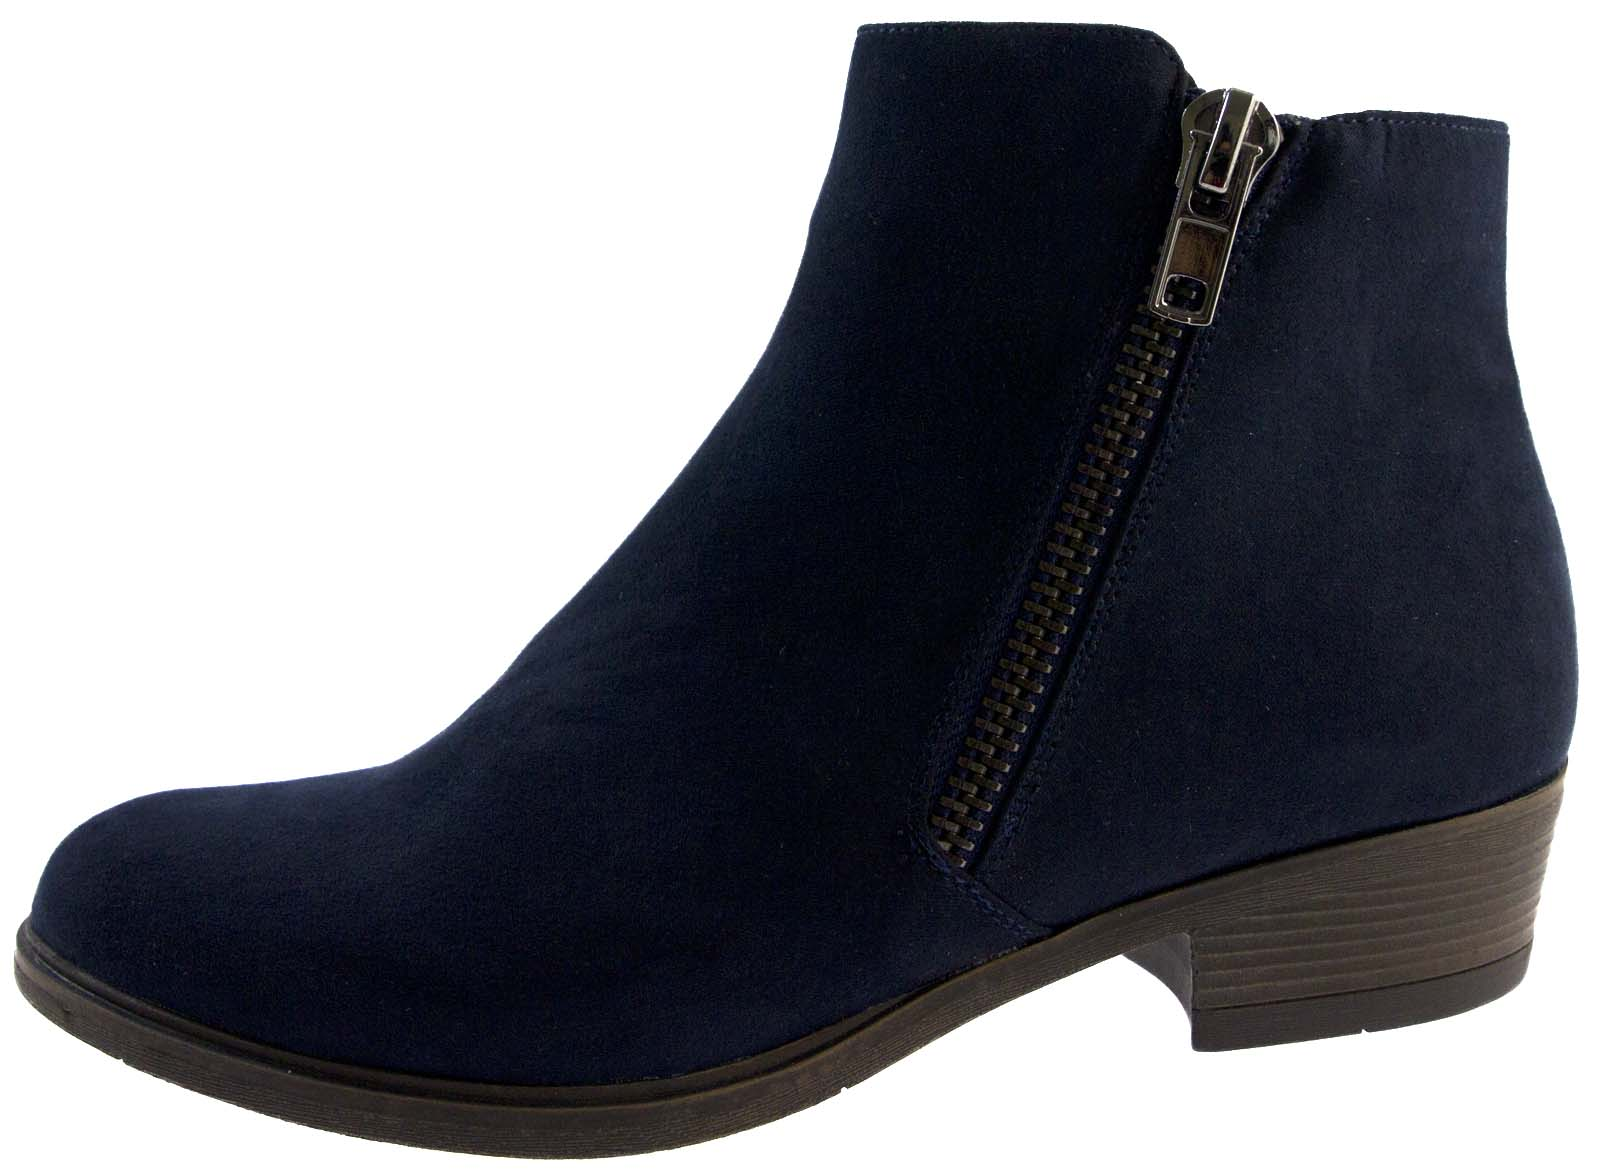 Womens Faux Suede Low Block Heel Chelsea Ankle Boots Zip Up Shoes ...